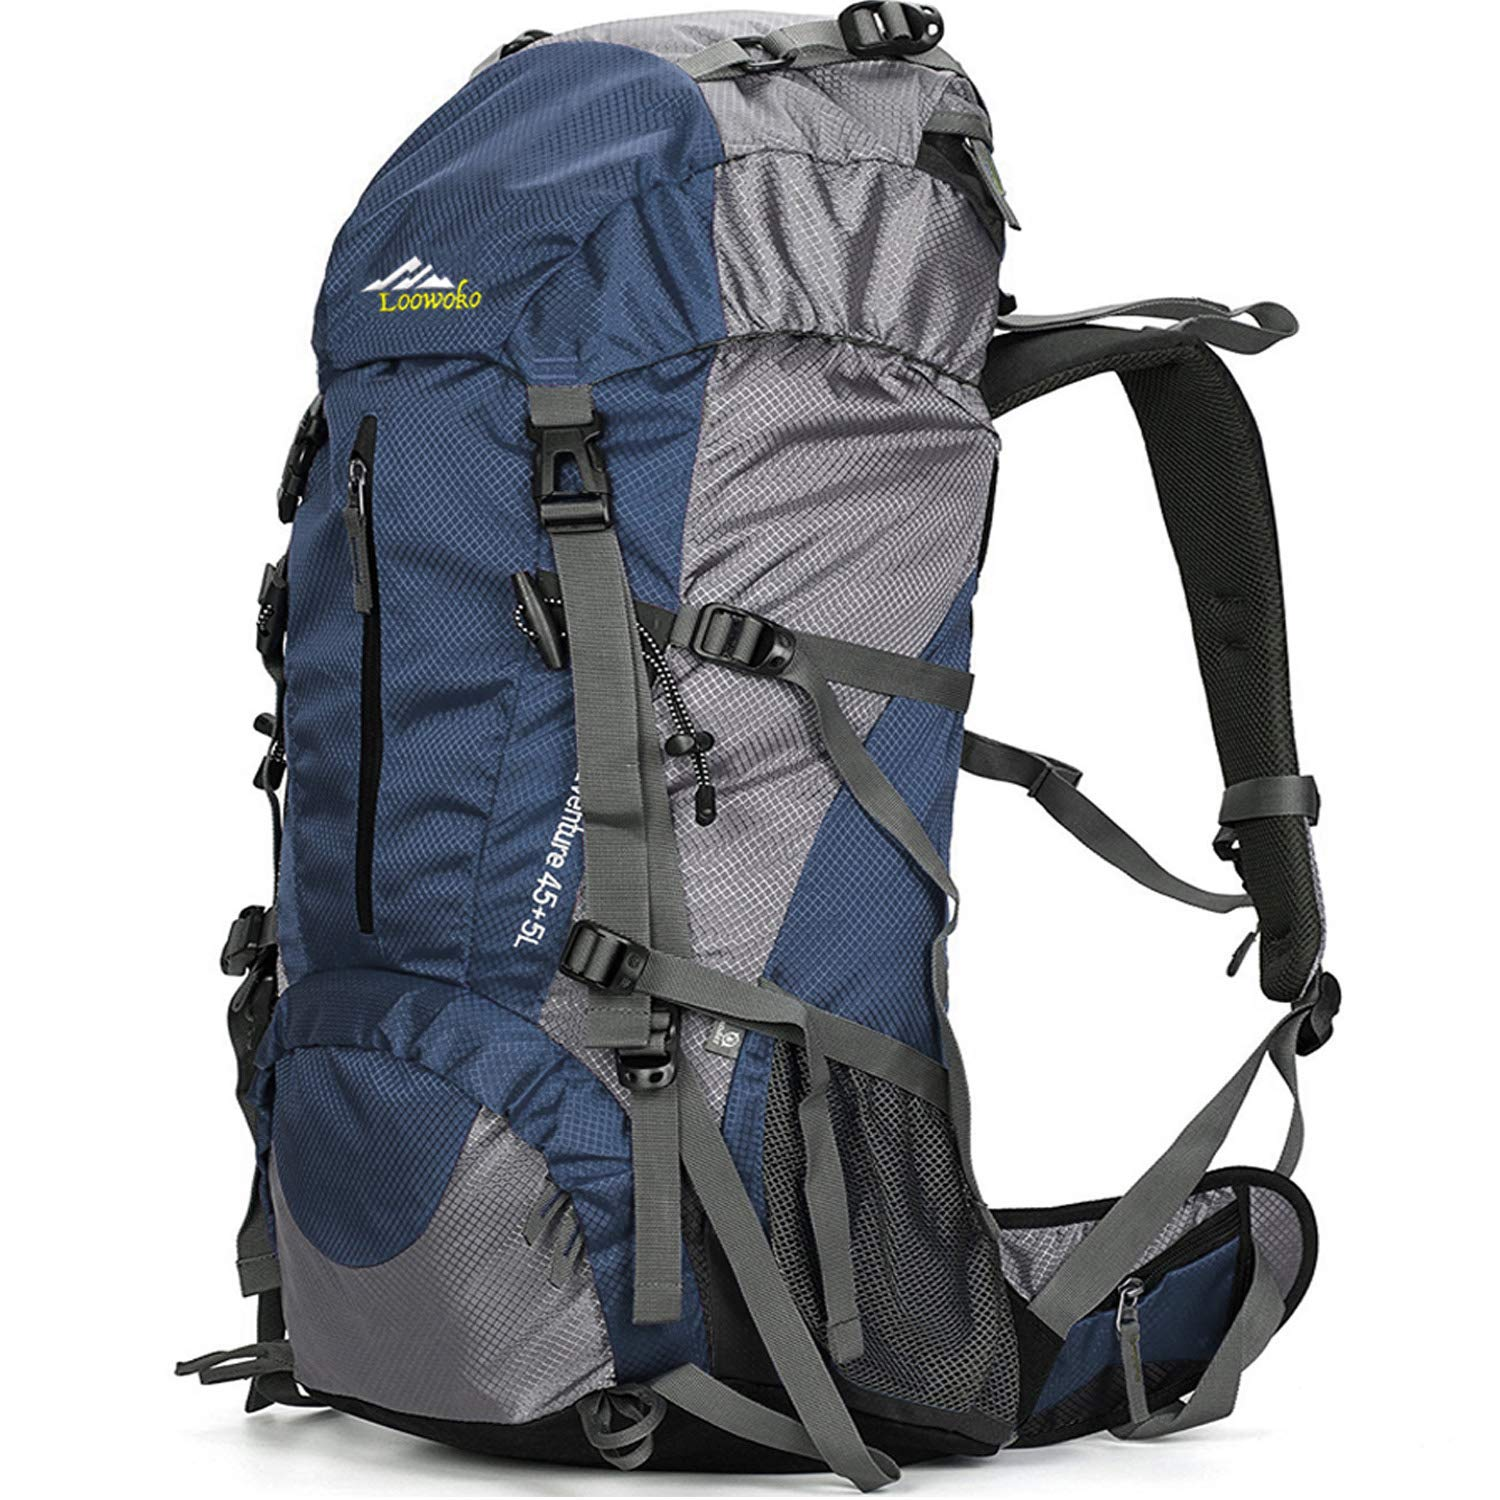 Gear up for your next great outdoor adventure with the Loowoko 50L Hiking Daypack with Rain Cover.